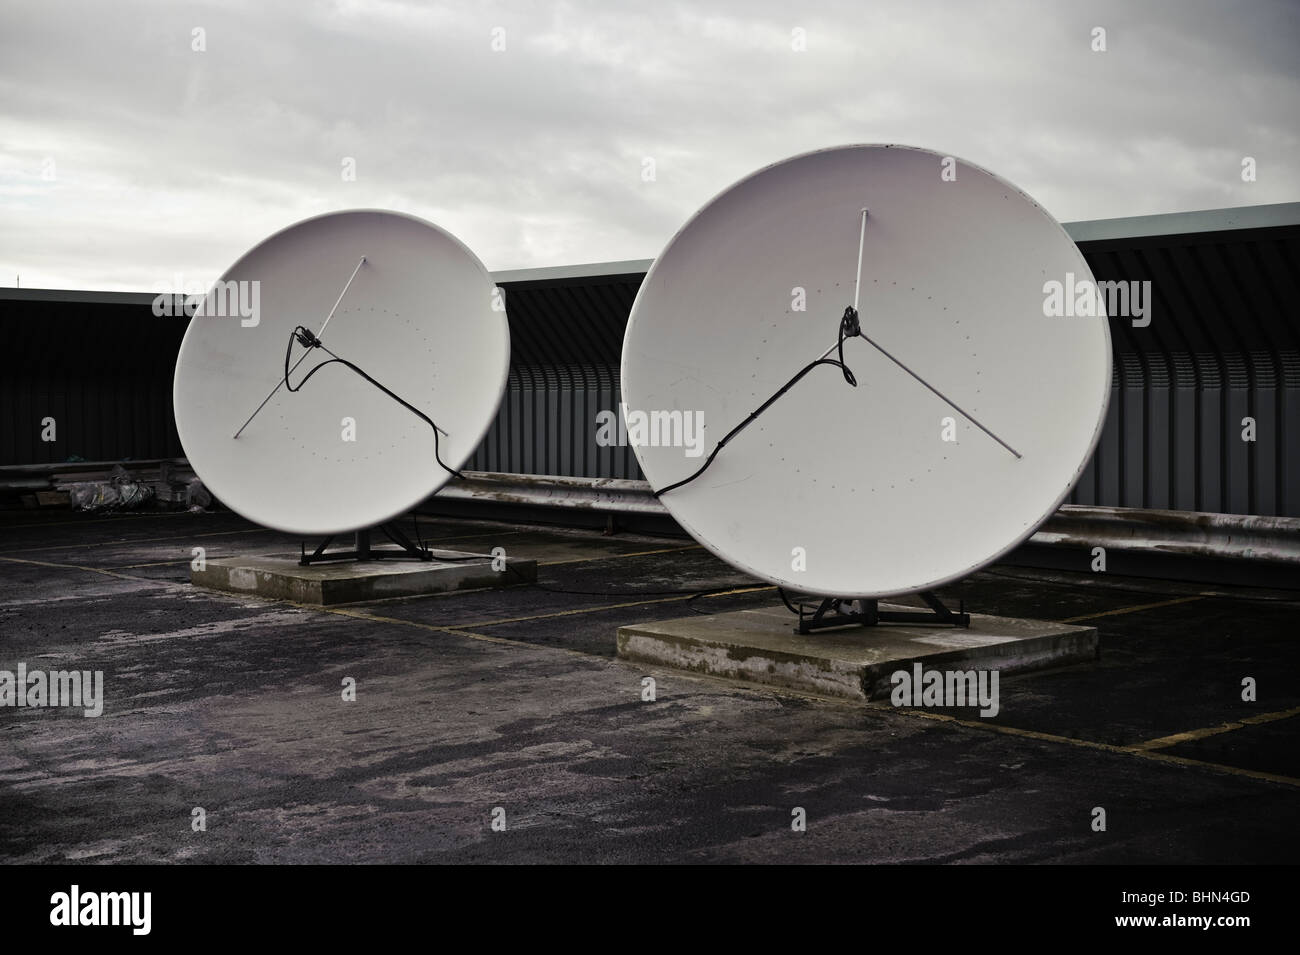 microwave satellite dish for receiving outside broadcast television signals at TV studio, UK - Stock Image